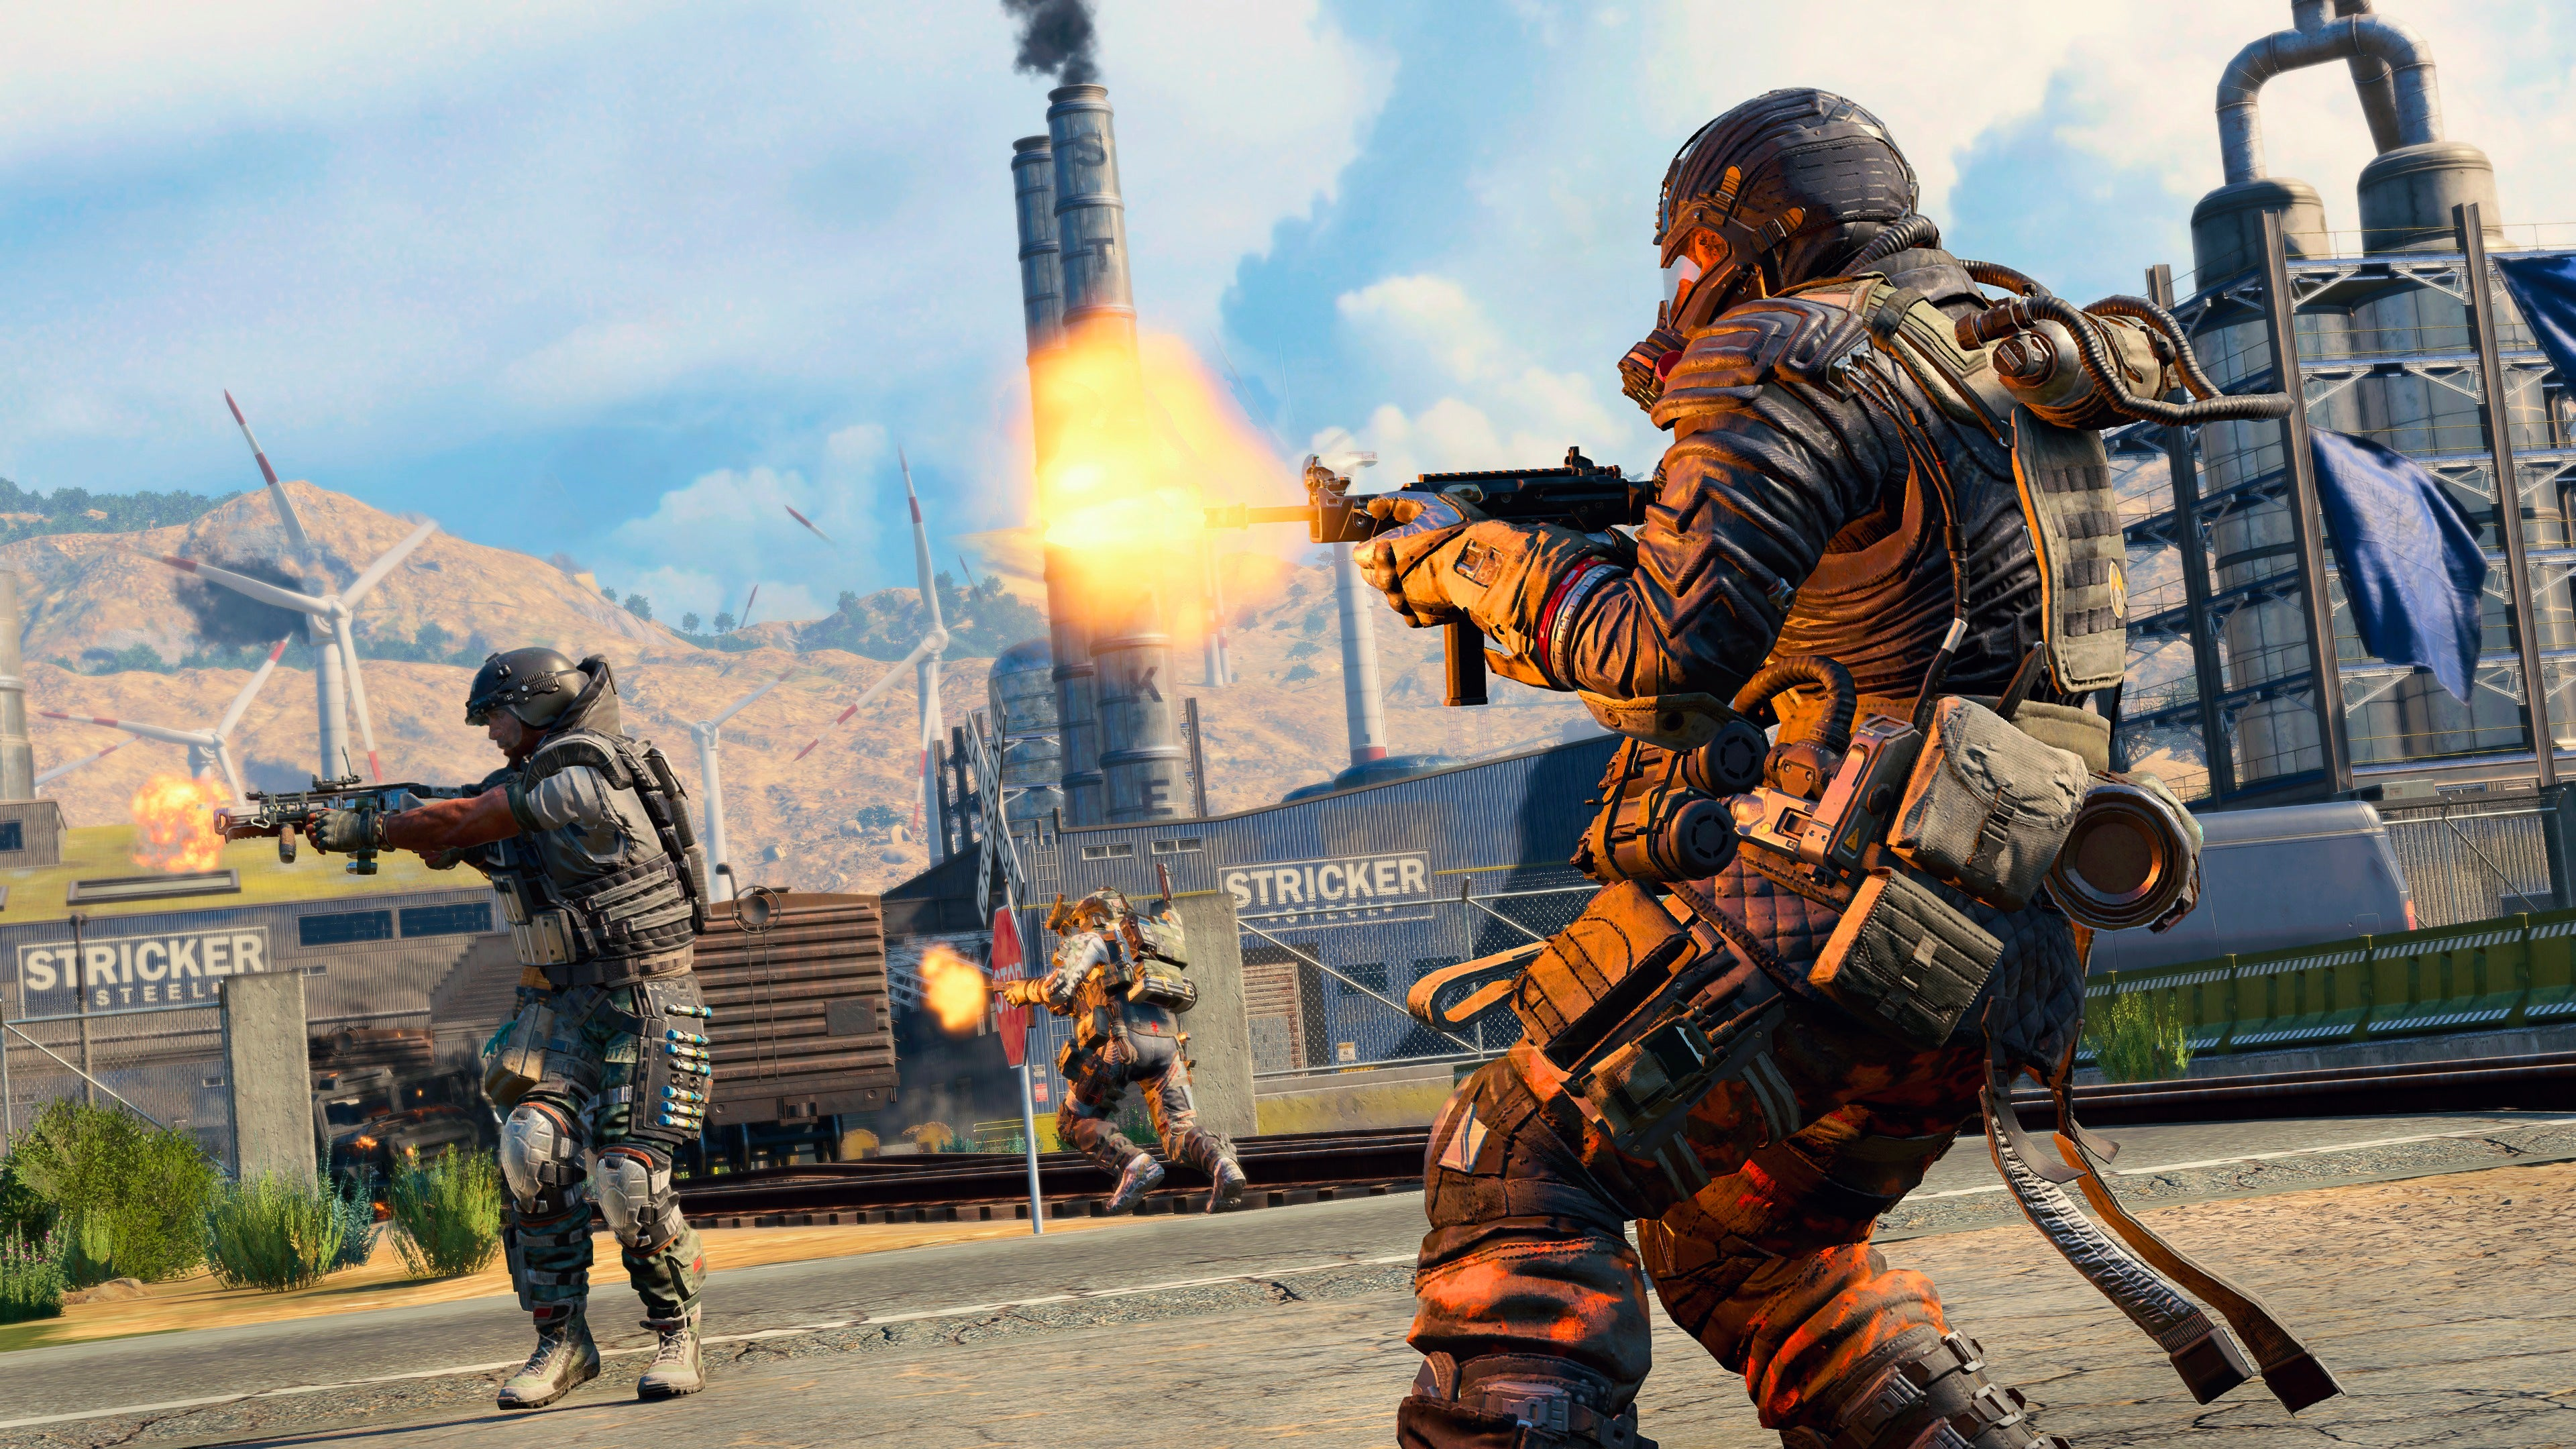 Call of Duty Black Ops 4 s Blackout mode is like PUBG without the jank